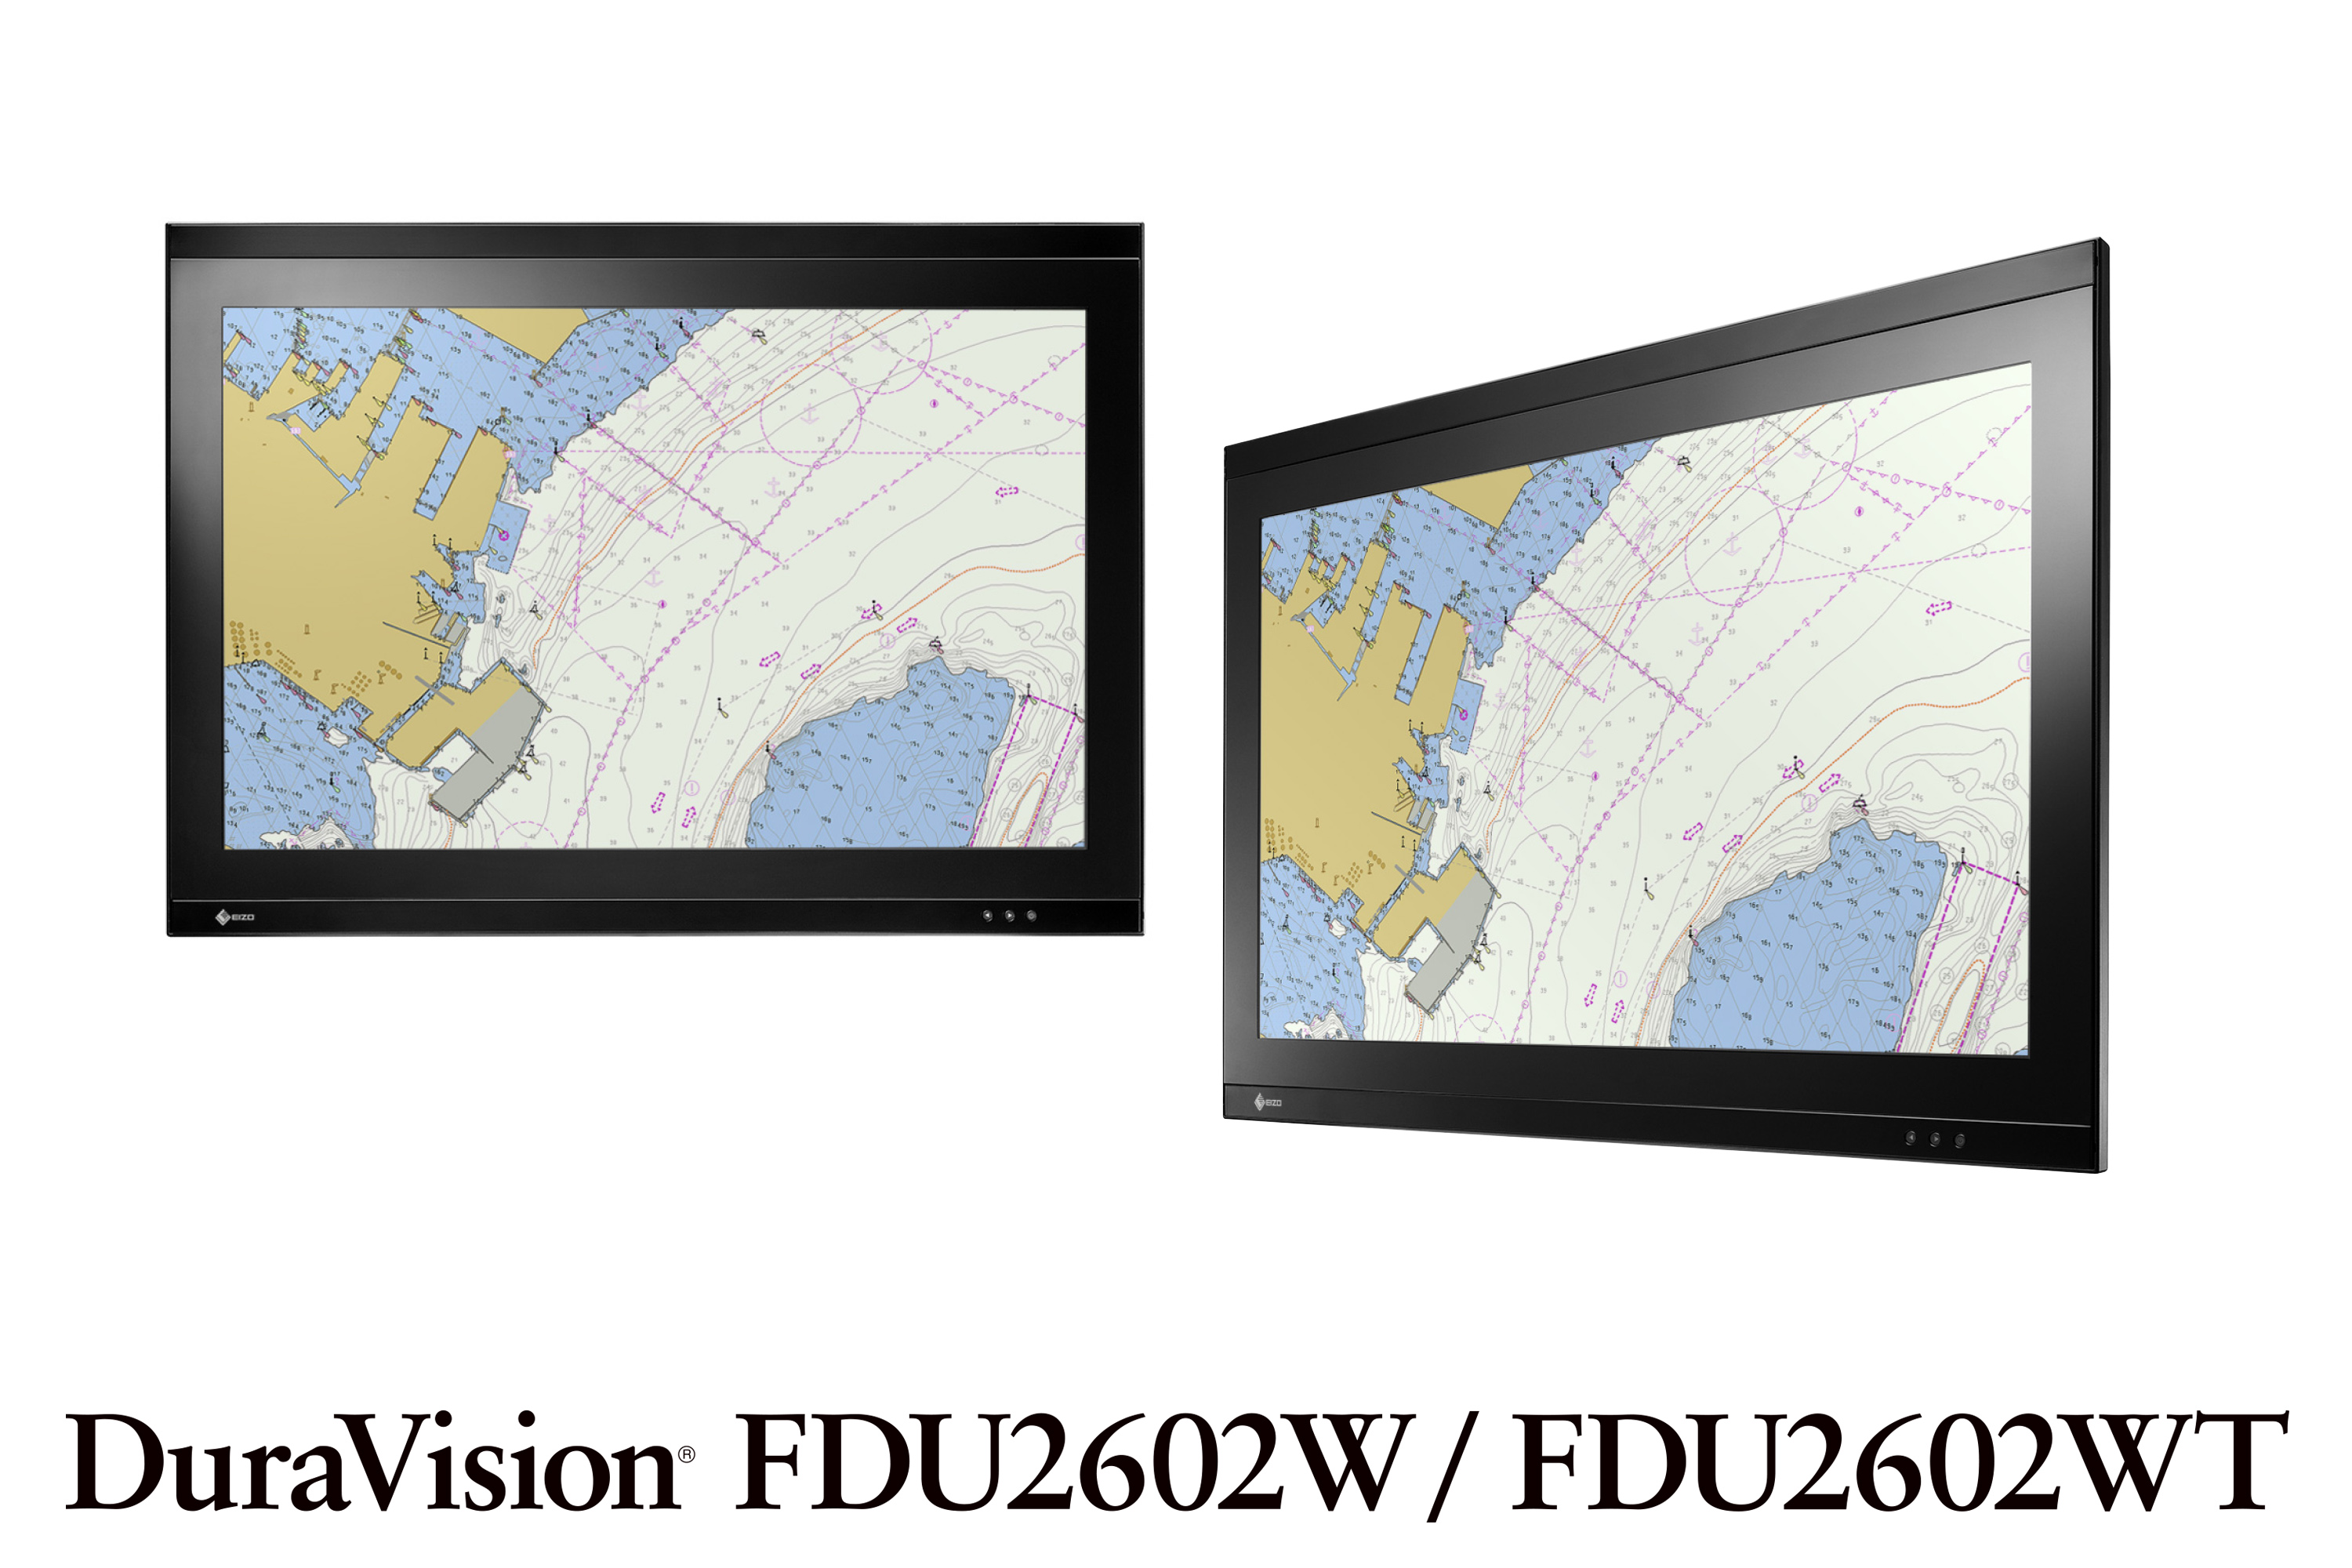 DuraVision_FDU2602W_FDU2602WT_press